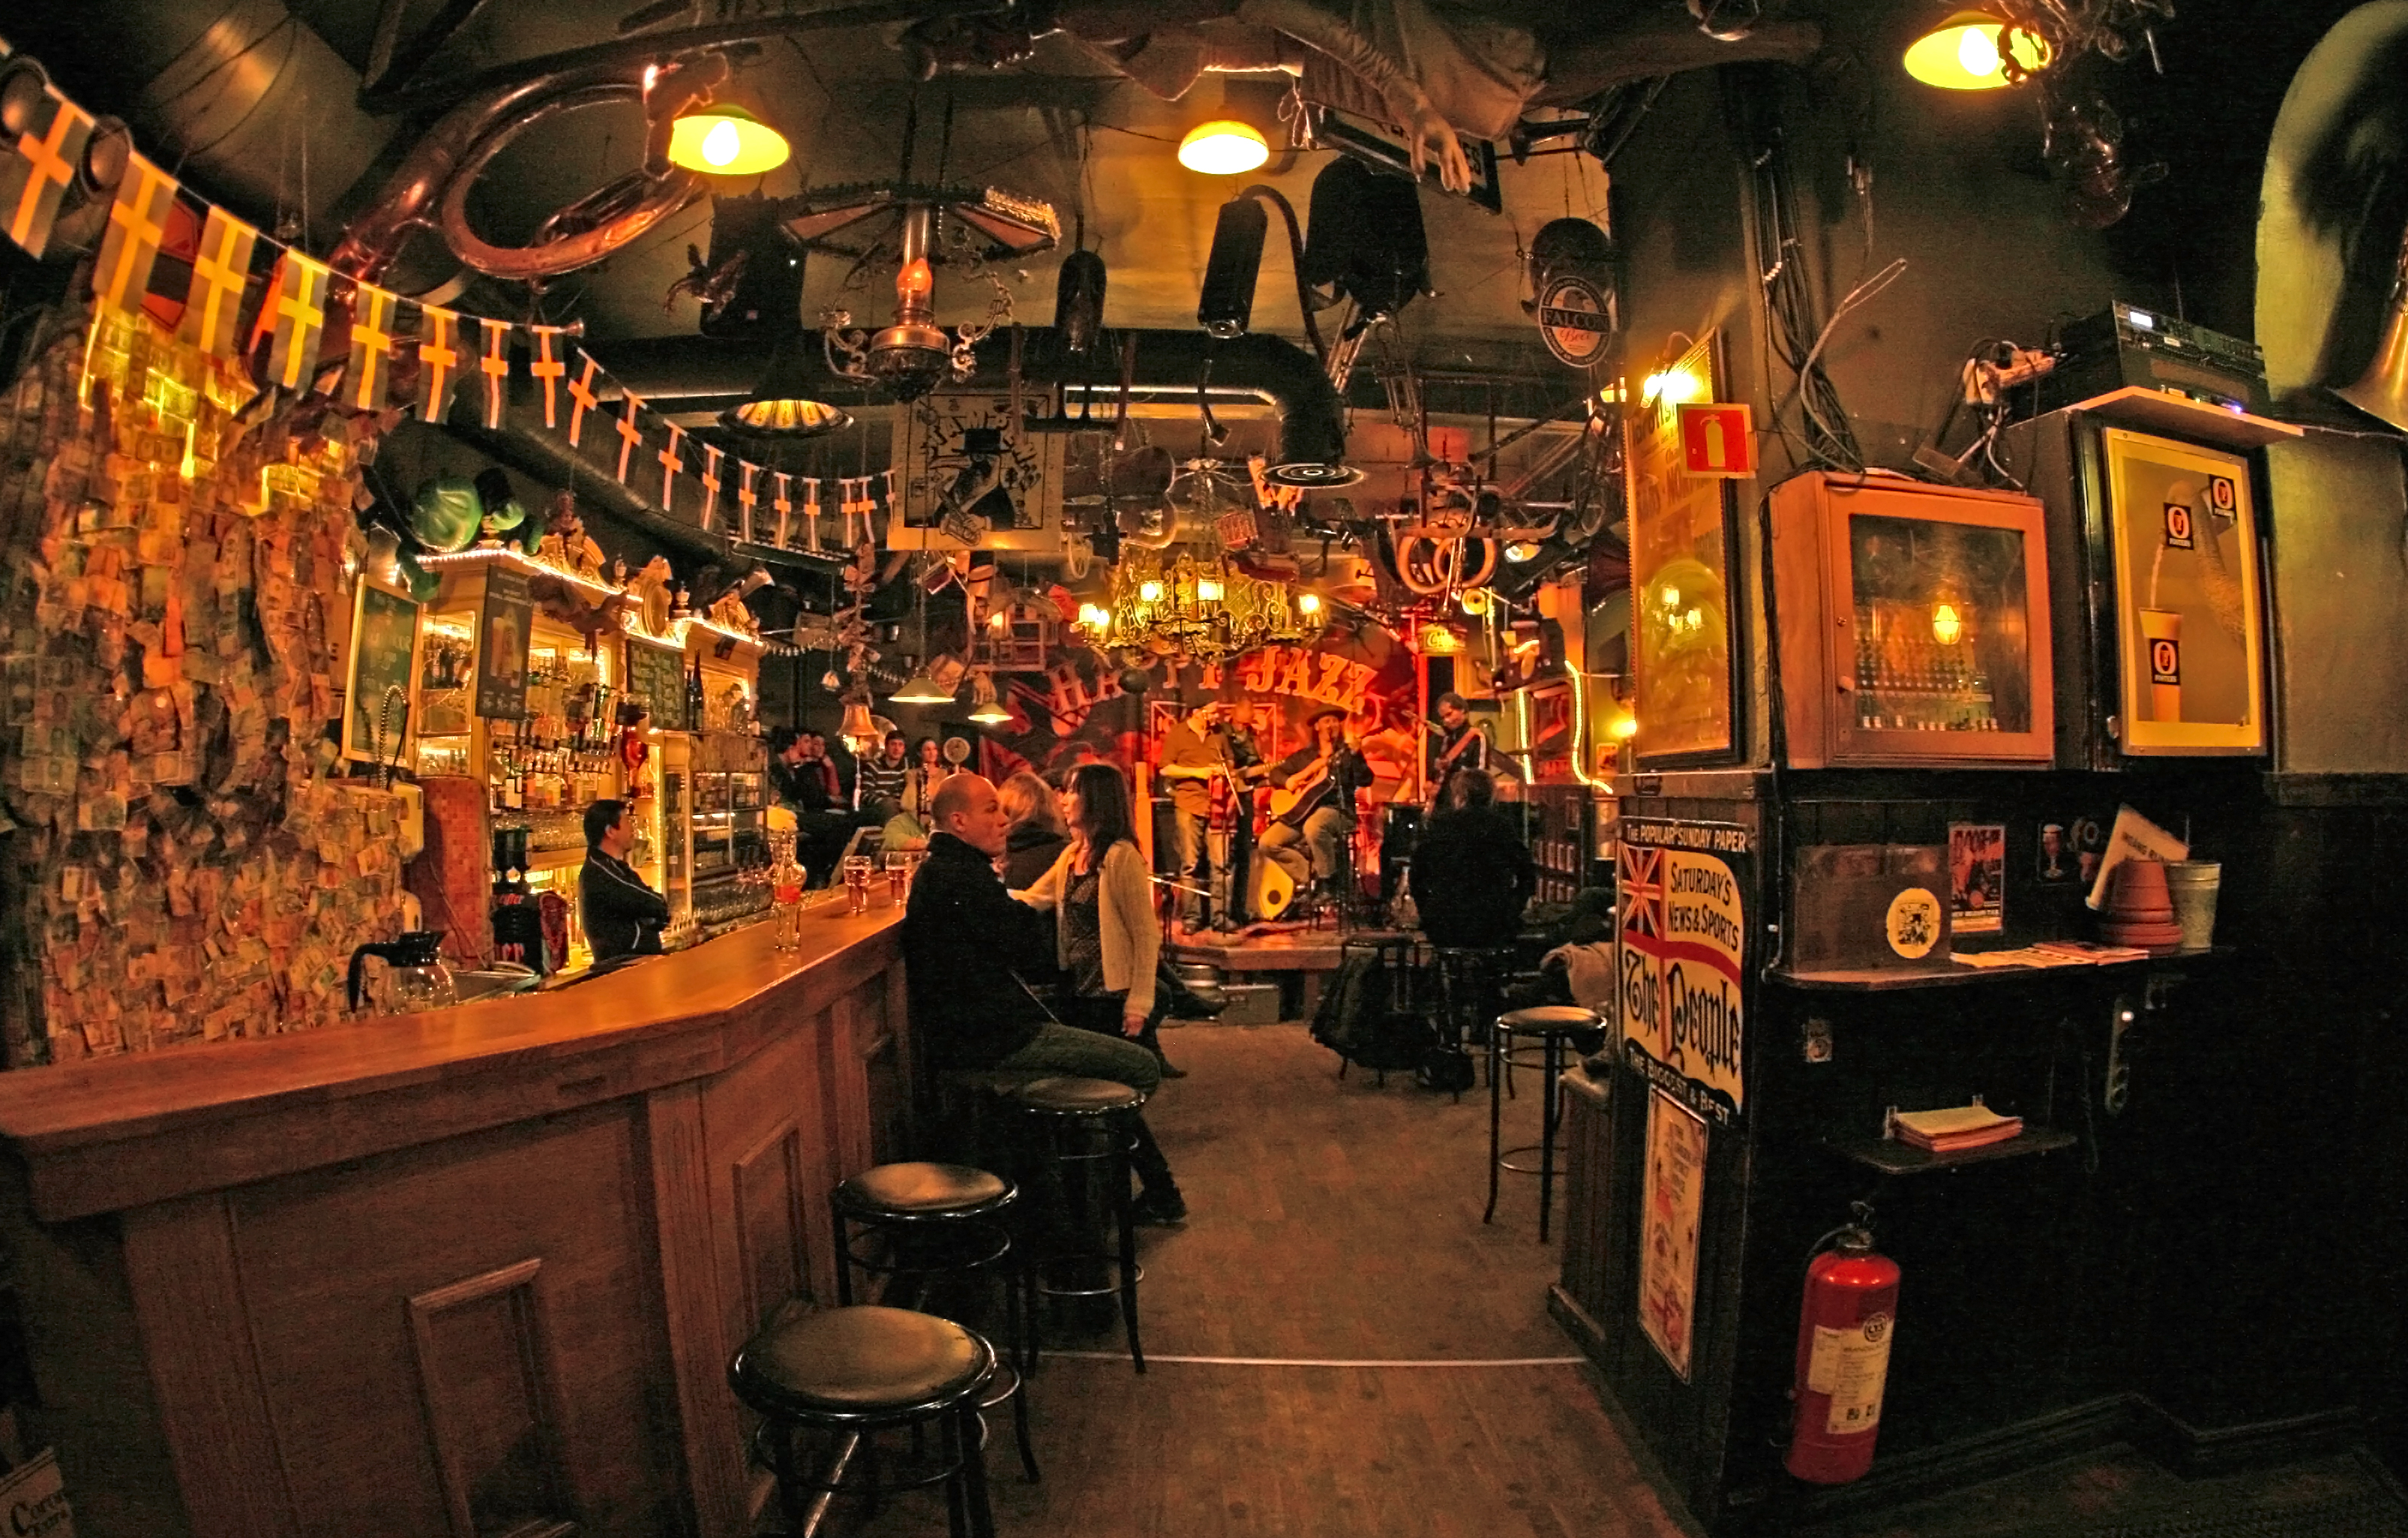 Pubs And Clubs With Function Room In Hastings Nz